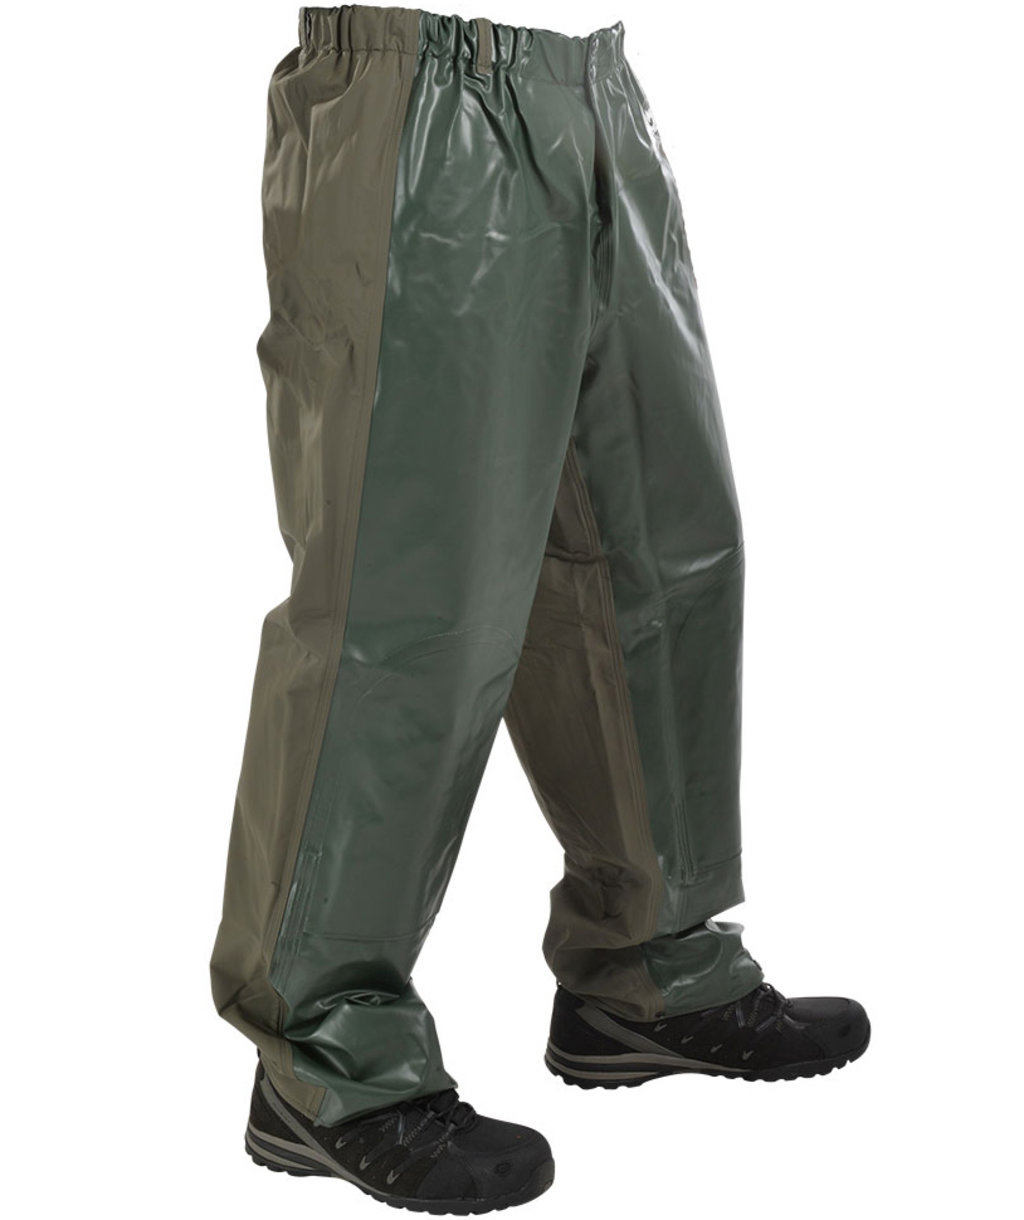 Ocean Combi trousers, Olive Green